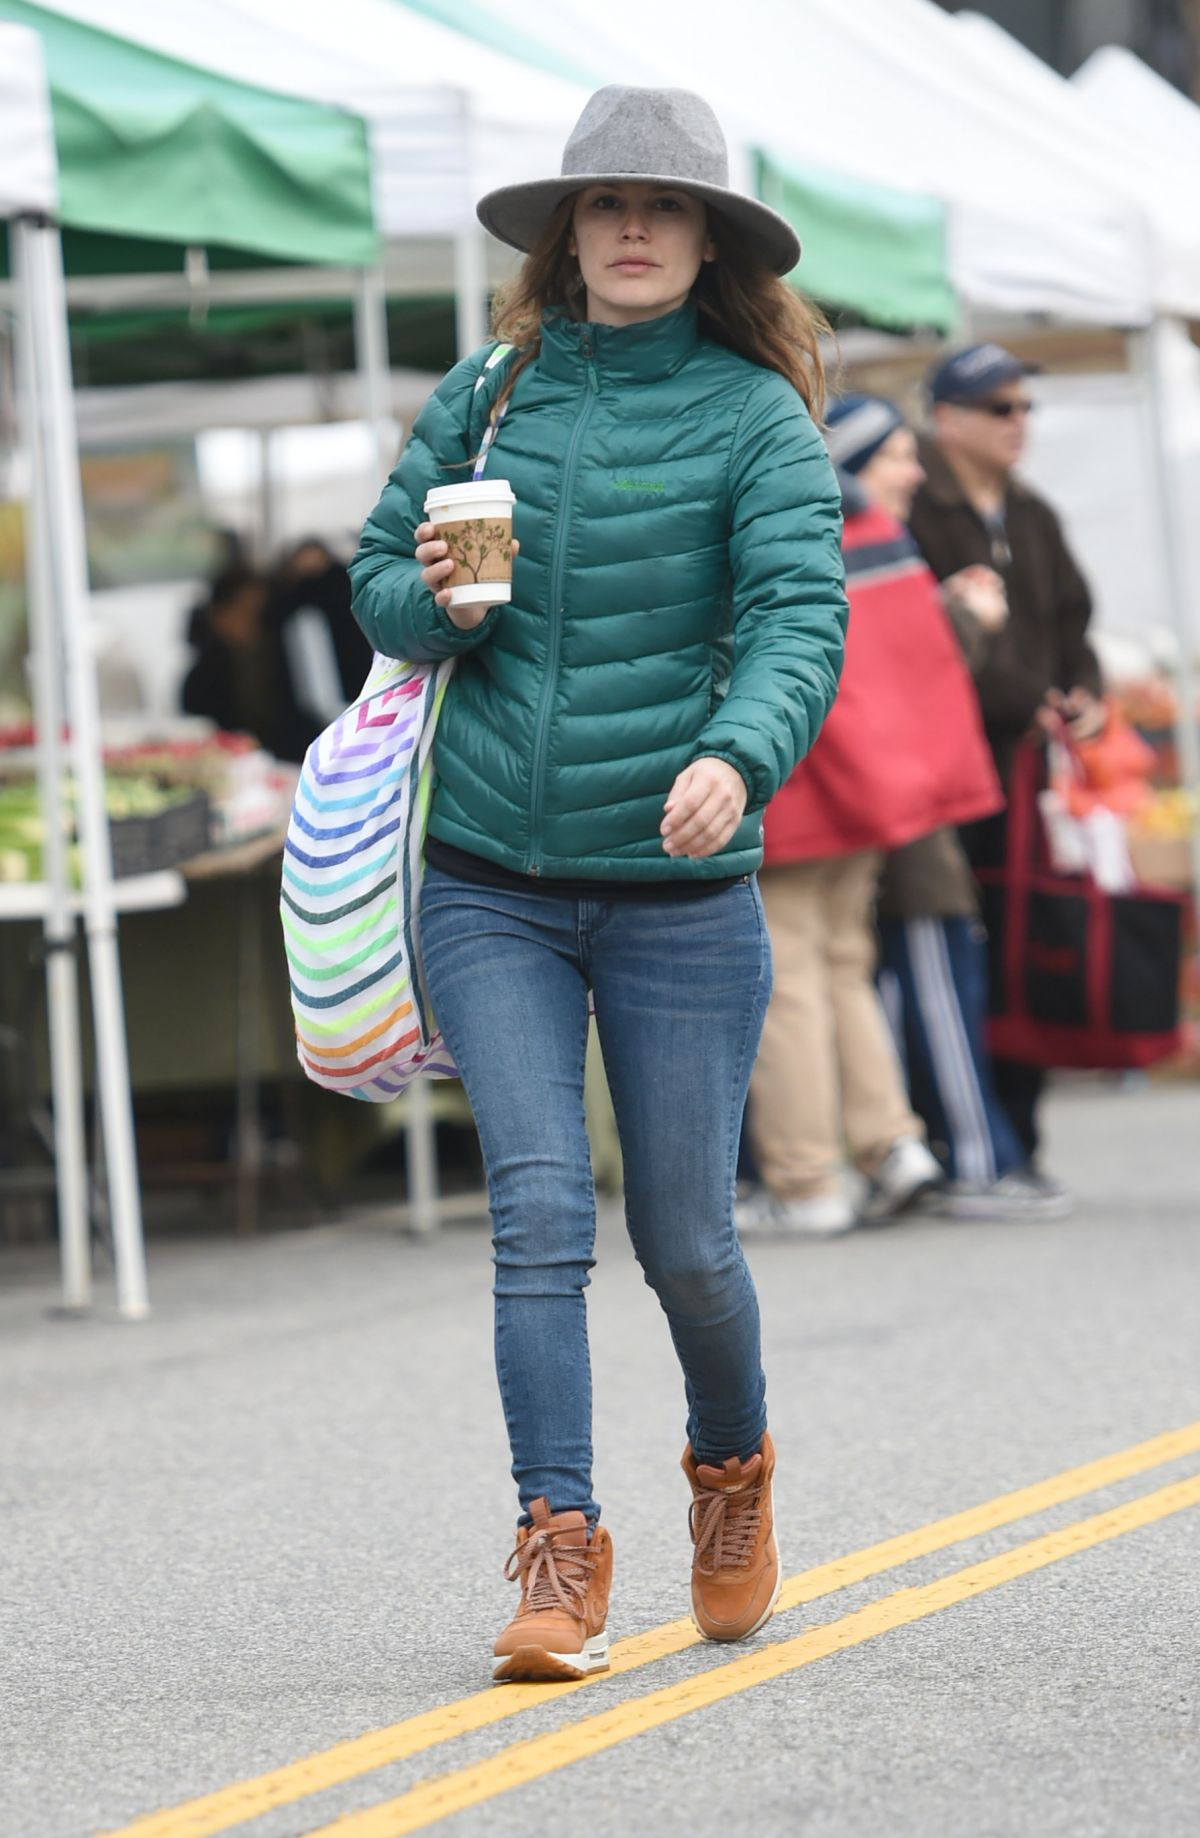 Rachel Bislon Ping At Farmers Market In Los Angeles 02 19 2017